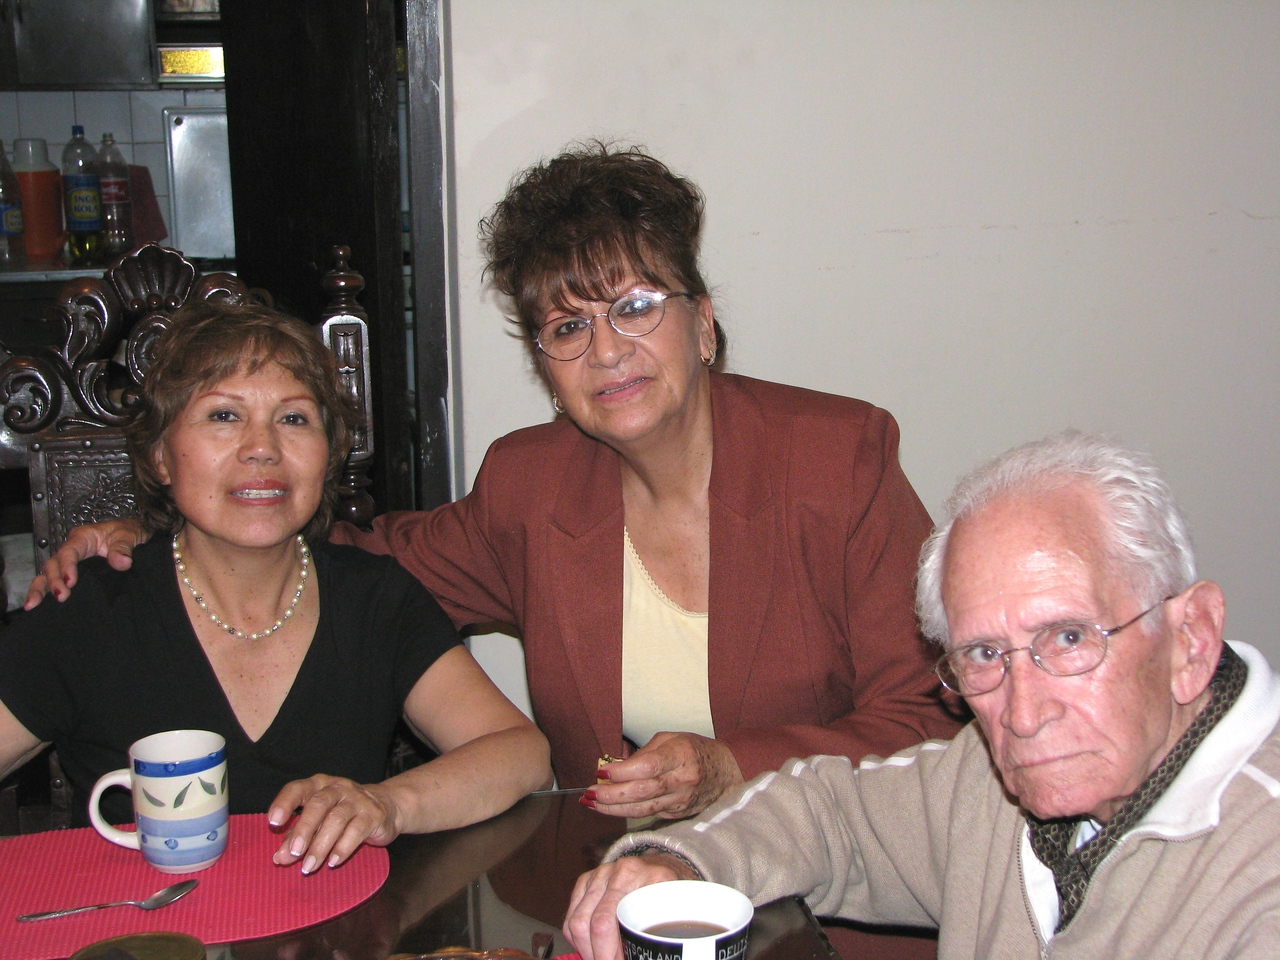 And here we meet with my in-laws...  <br /> Y aqui encontramos a mis suegros...